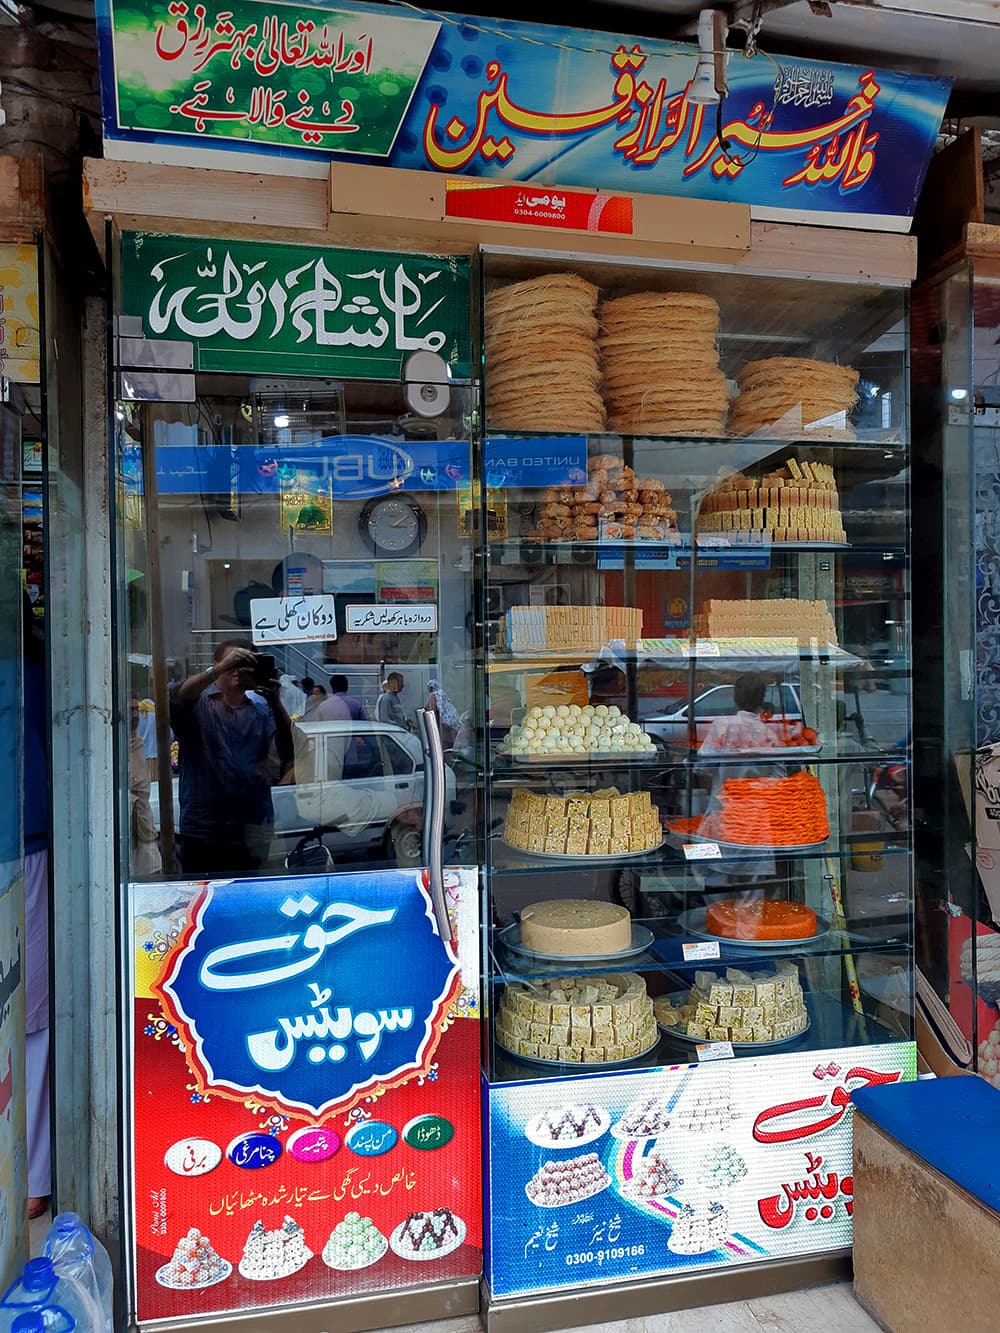 The sweet shop in Bhera.